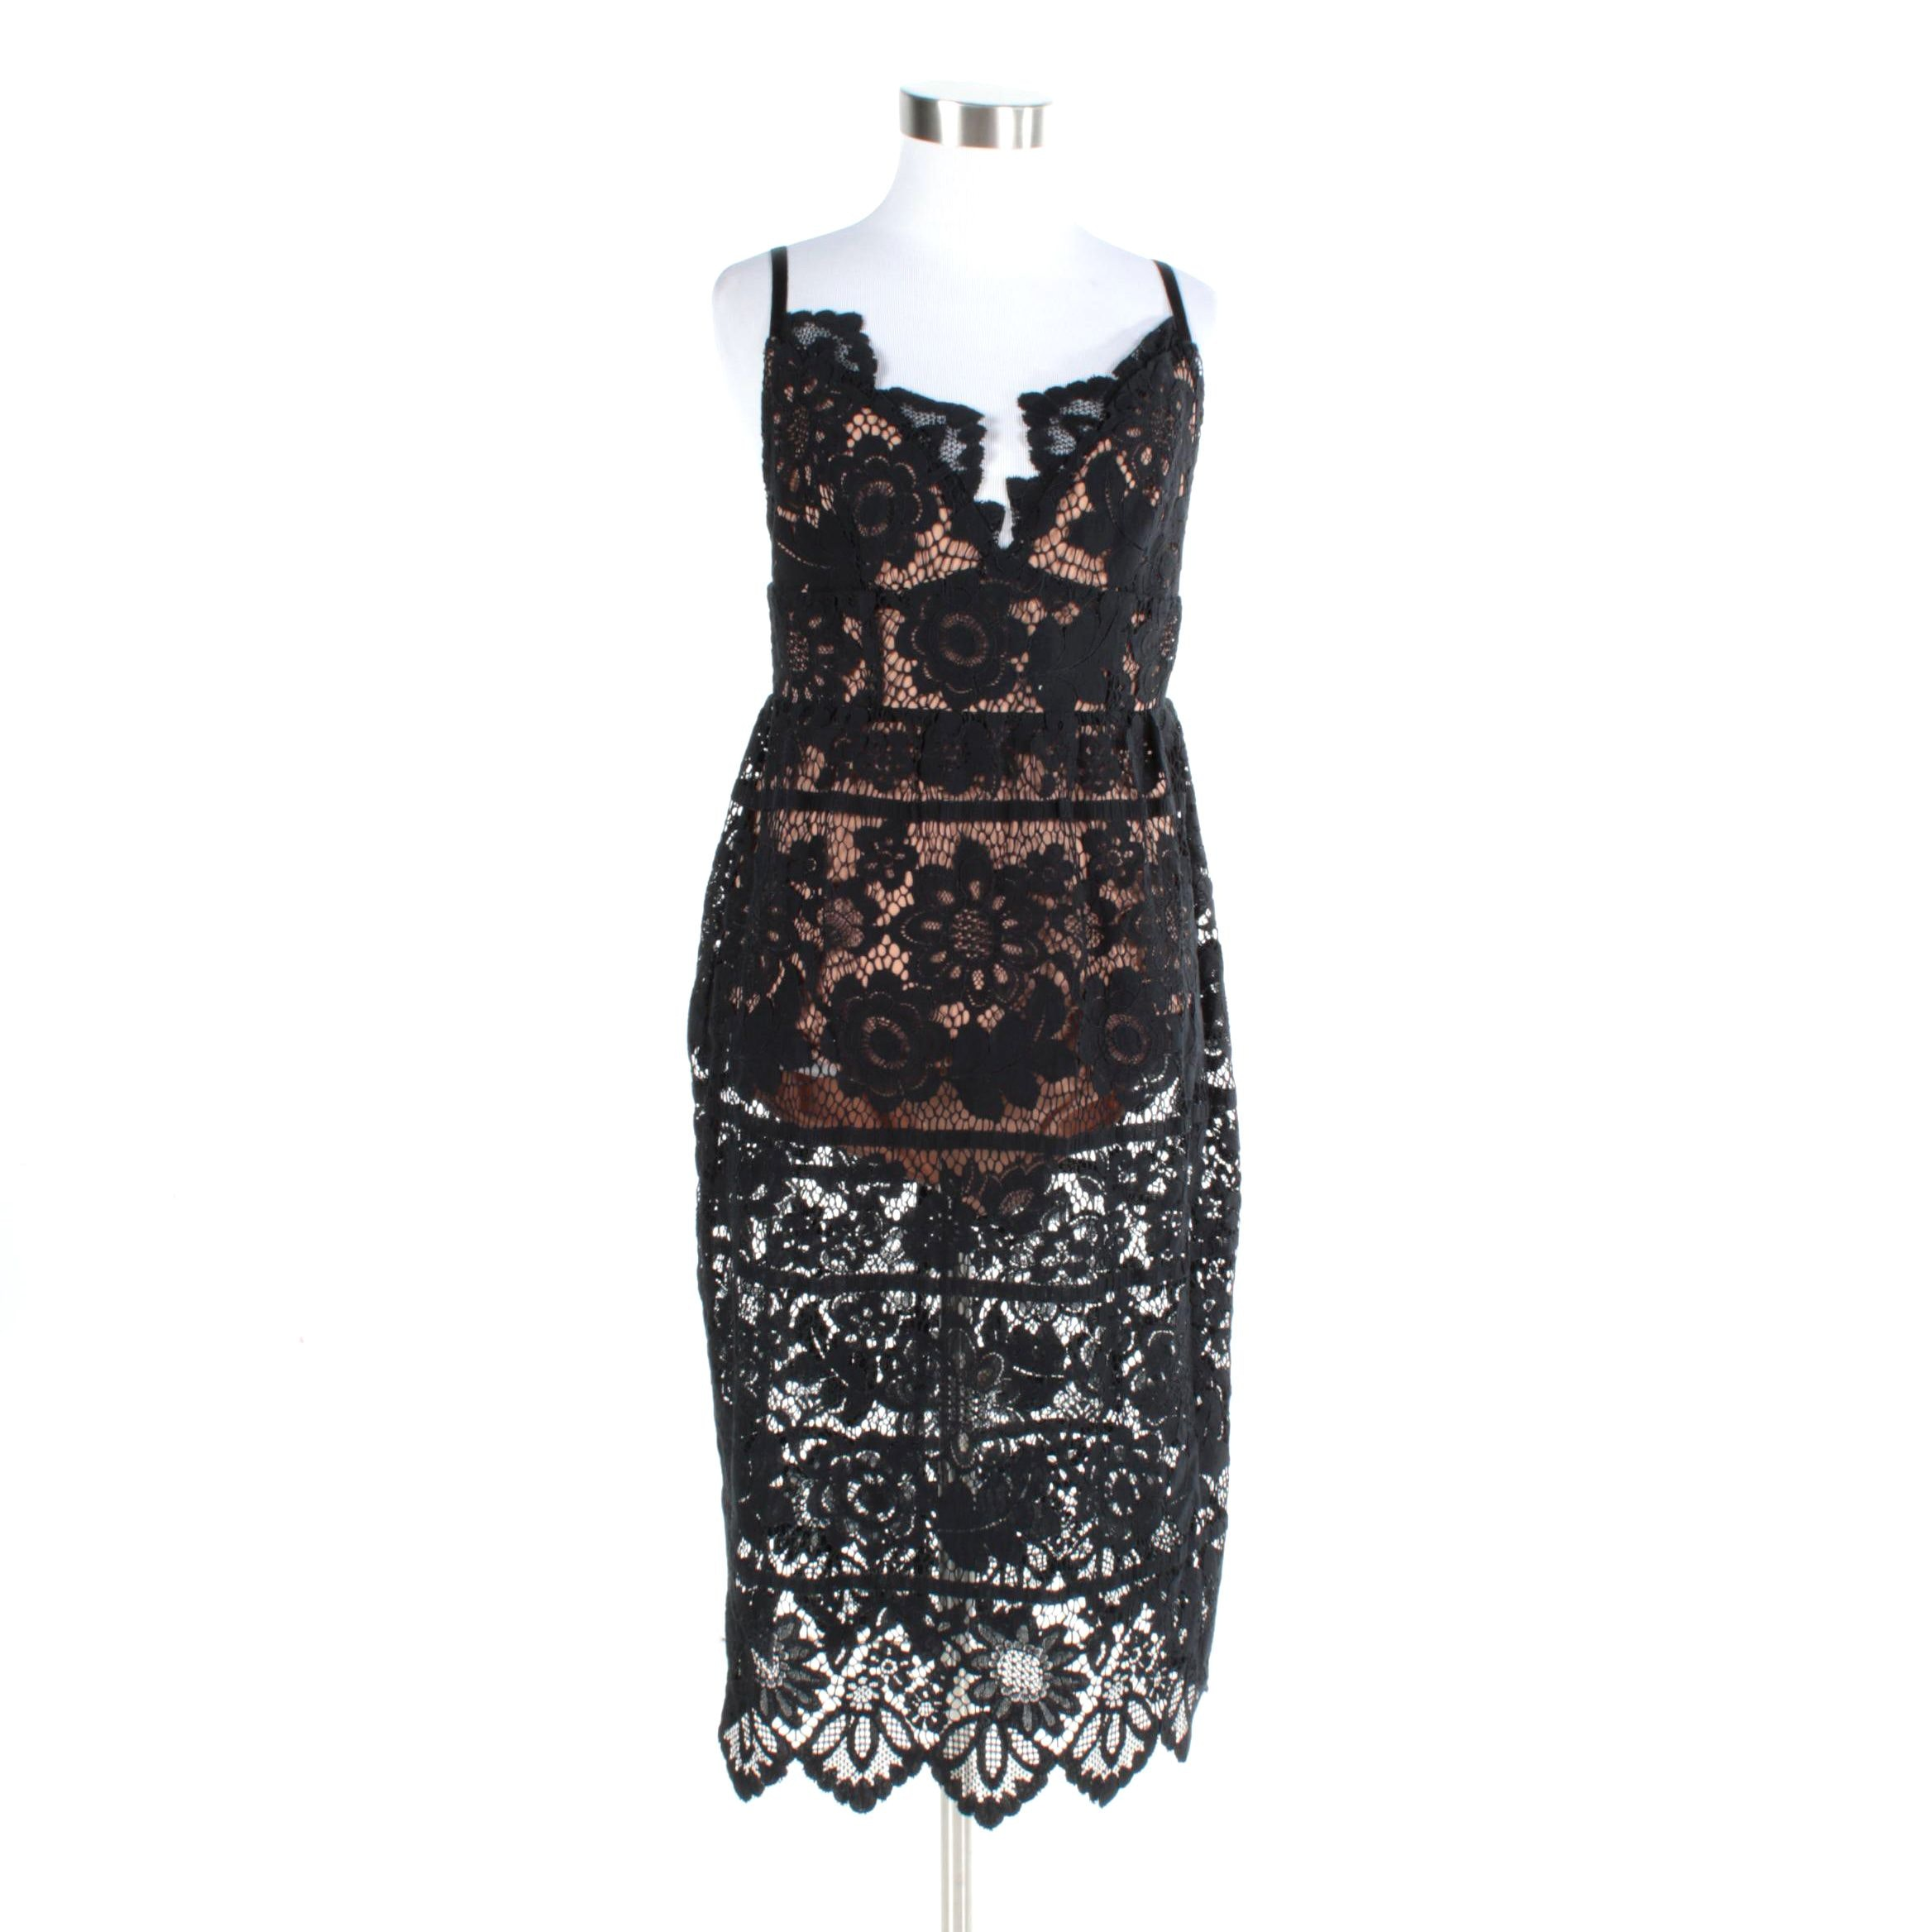 Women's For Love & Lemons Black Lace Cocktail Dress